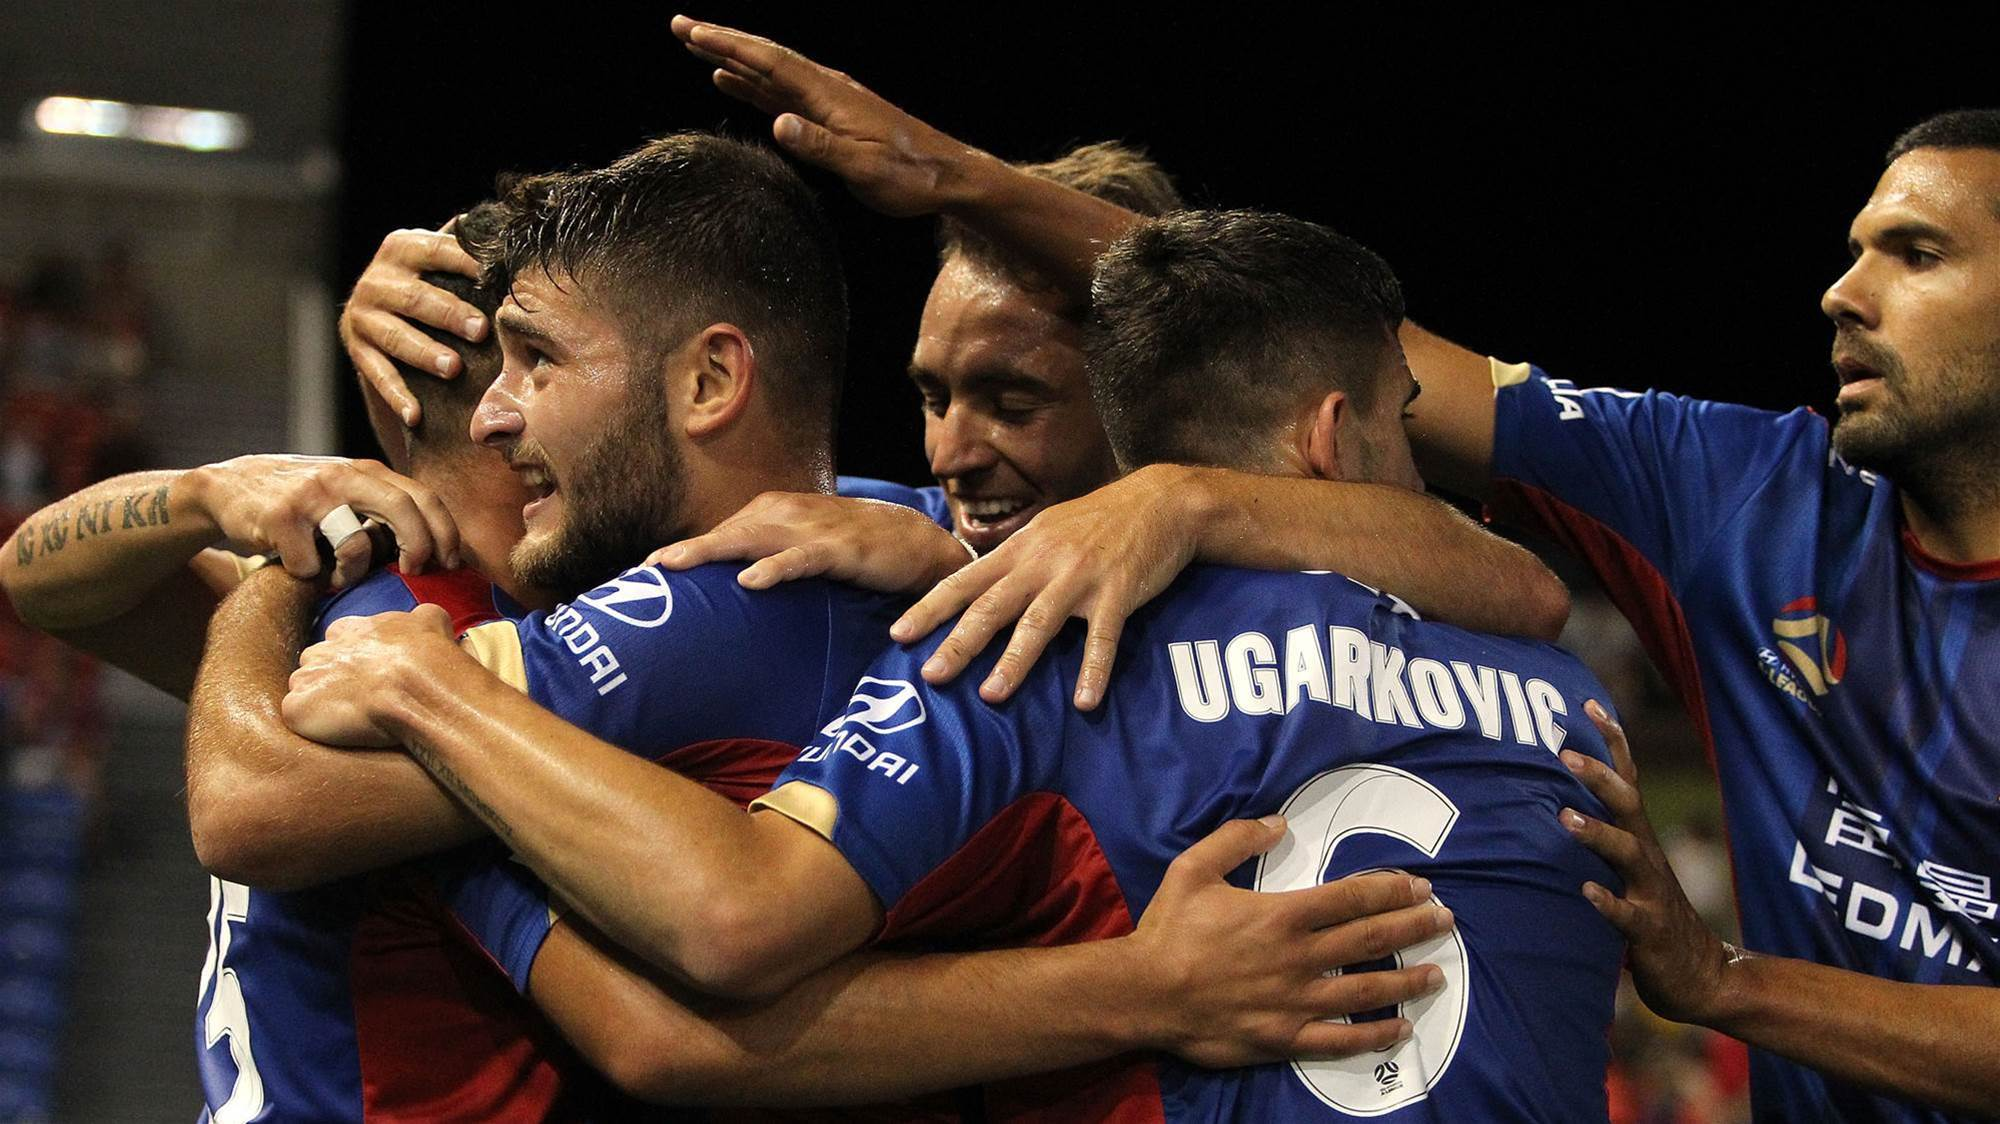 Newcastle Jets thrash Melbourne Victory - No more Mr Nice Guys